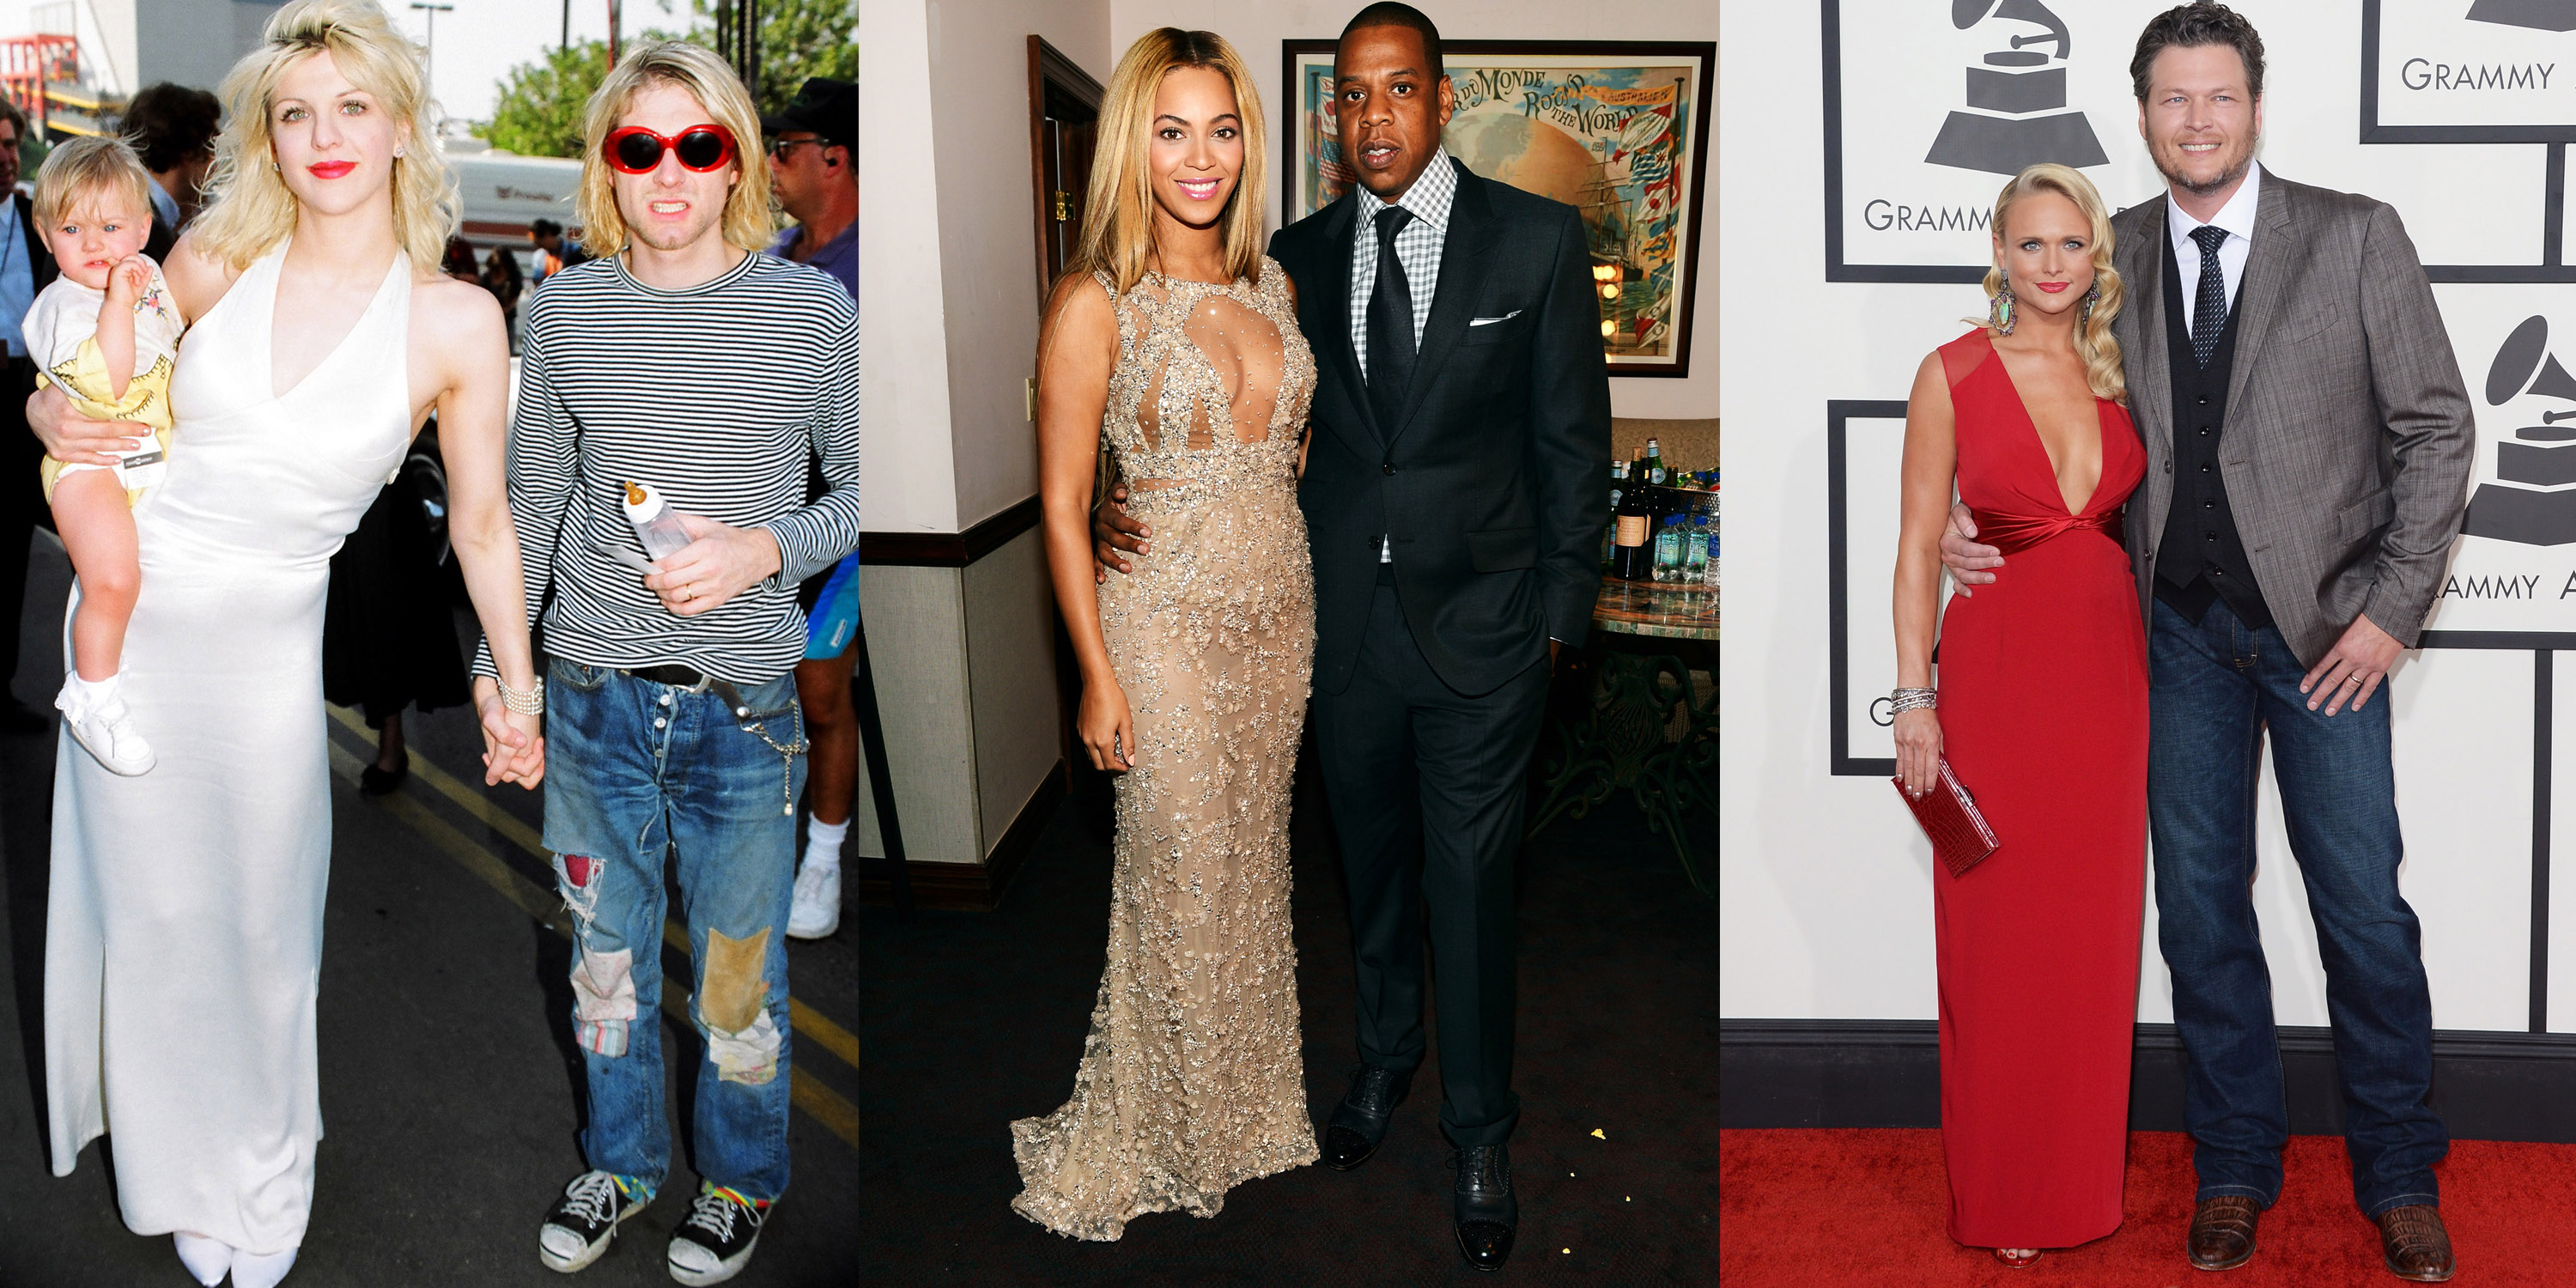 21 Celebrity Couples Who Broke Up While On the Job - 11 Co ...